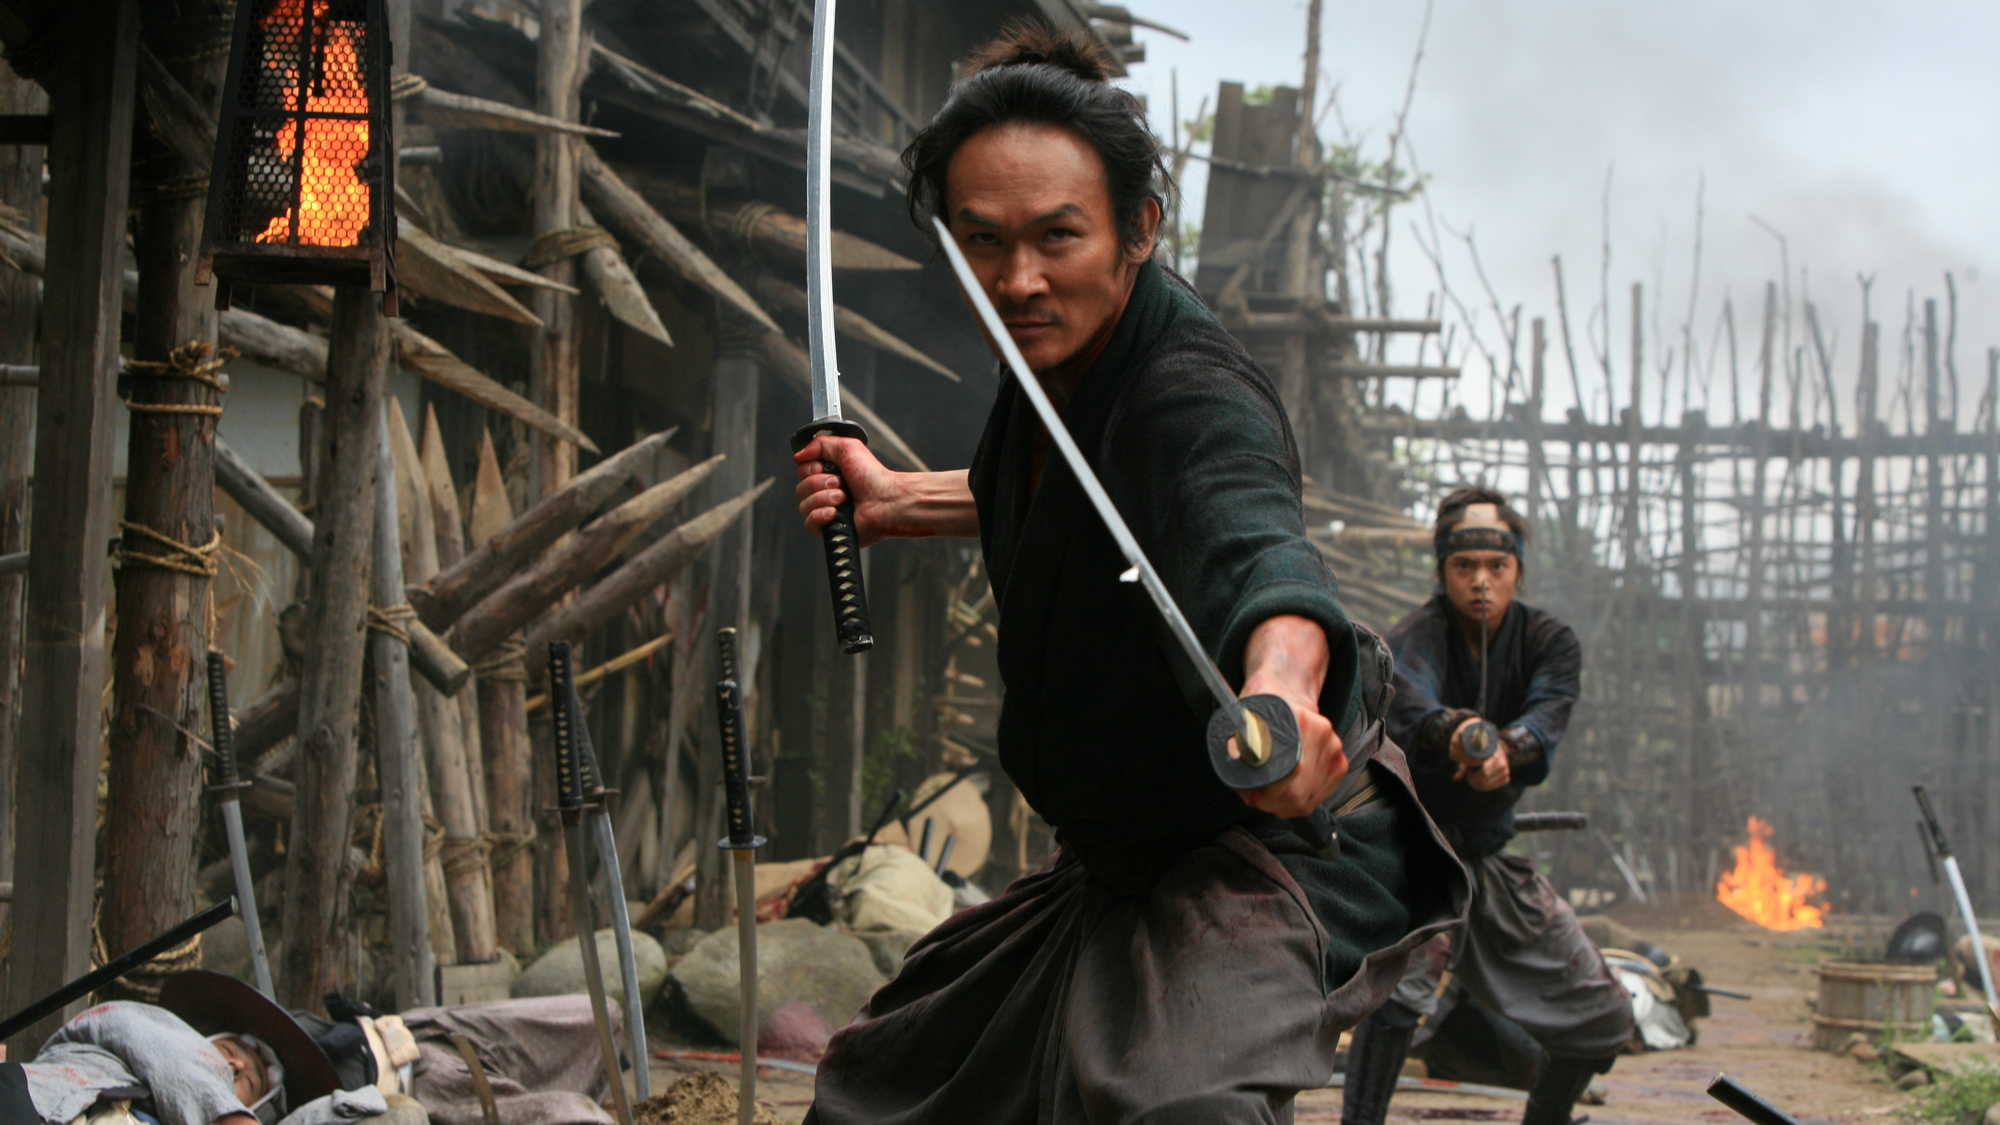 13 Assassins (image 1)